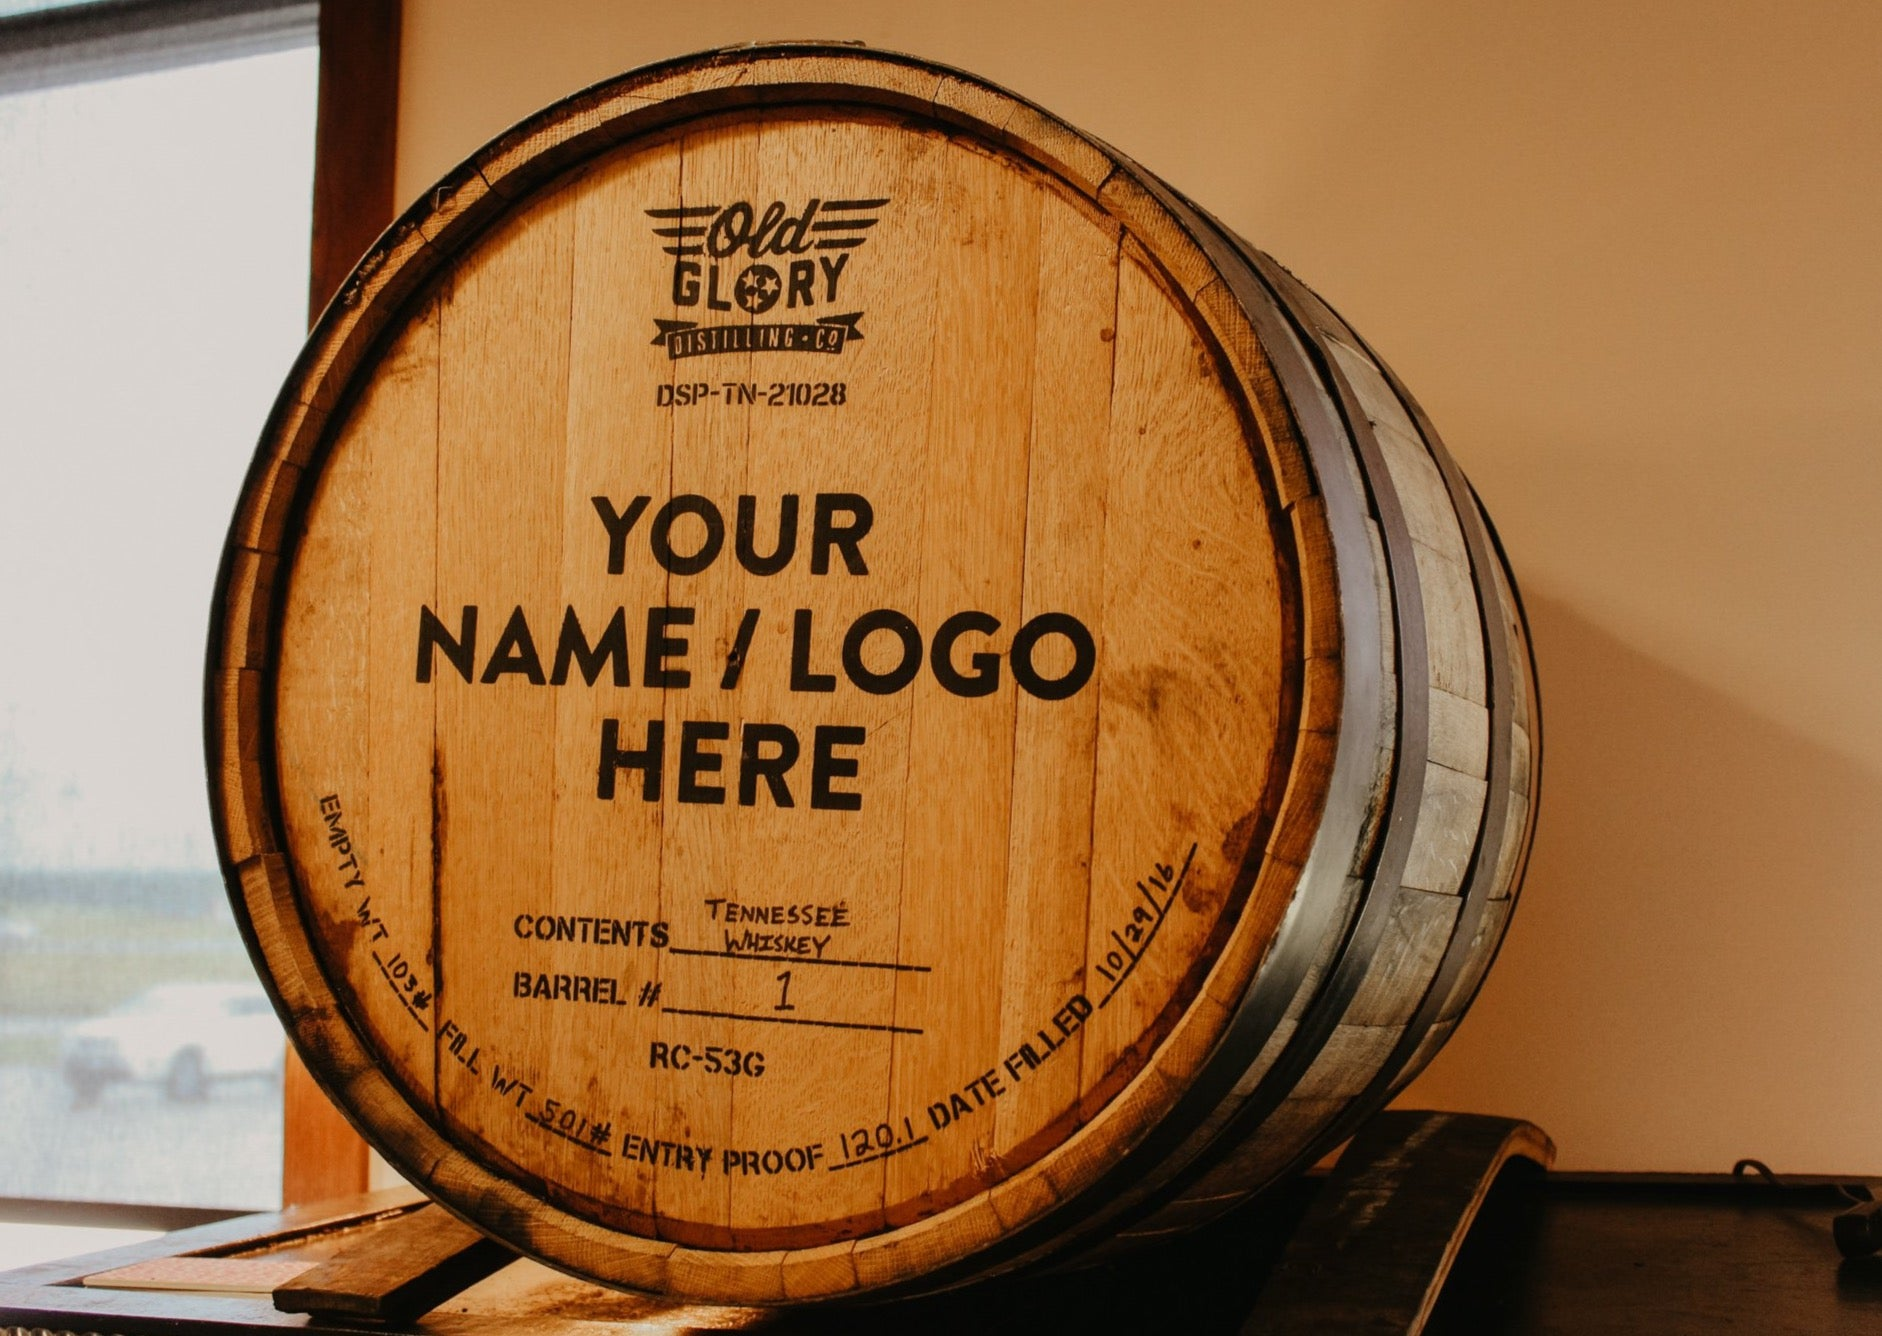 Old Glory Whiskey Barrel Sponsorship